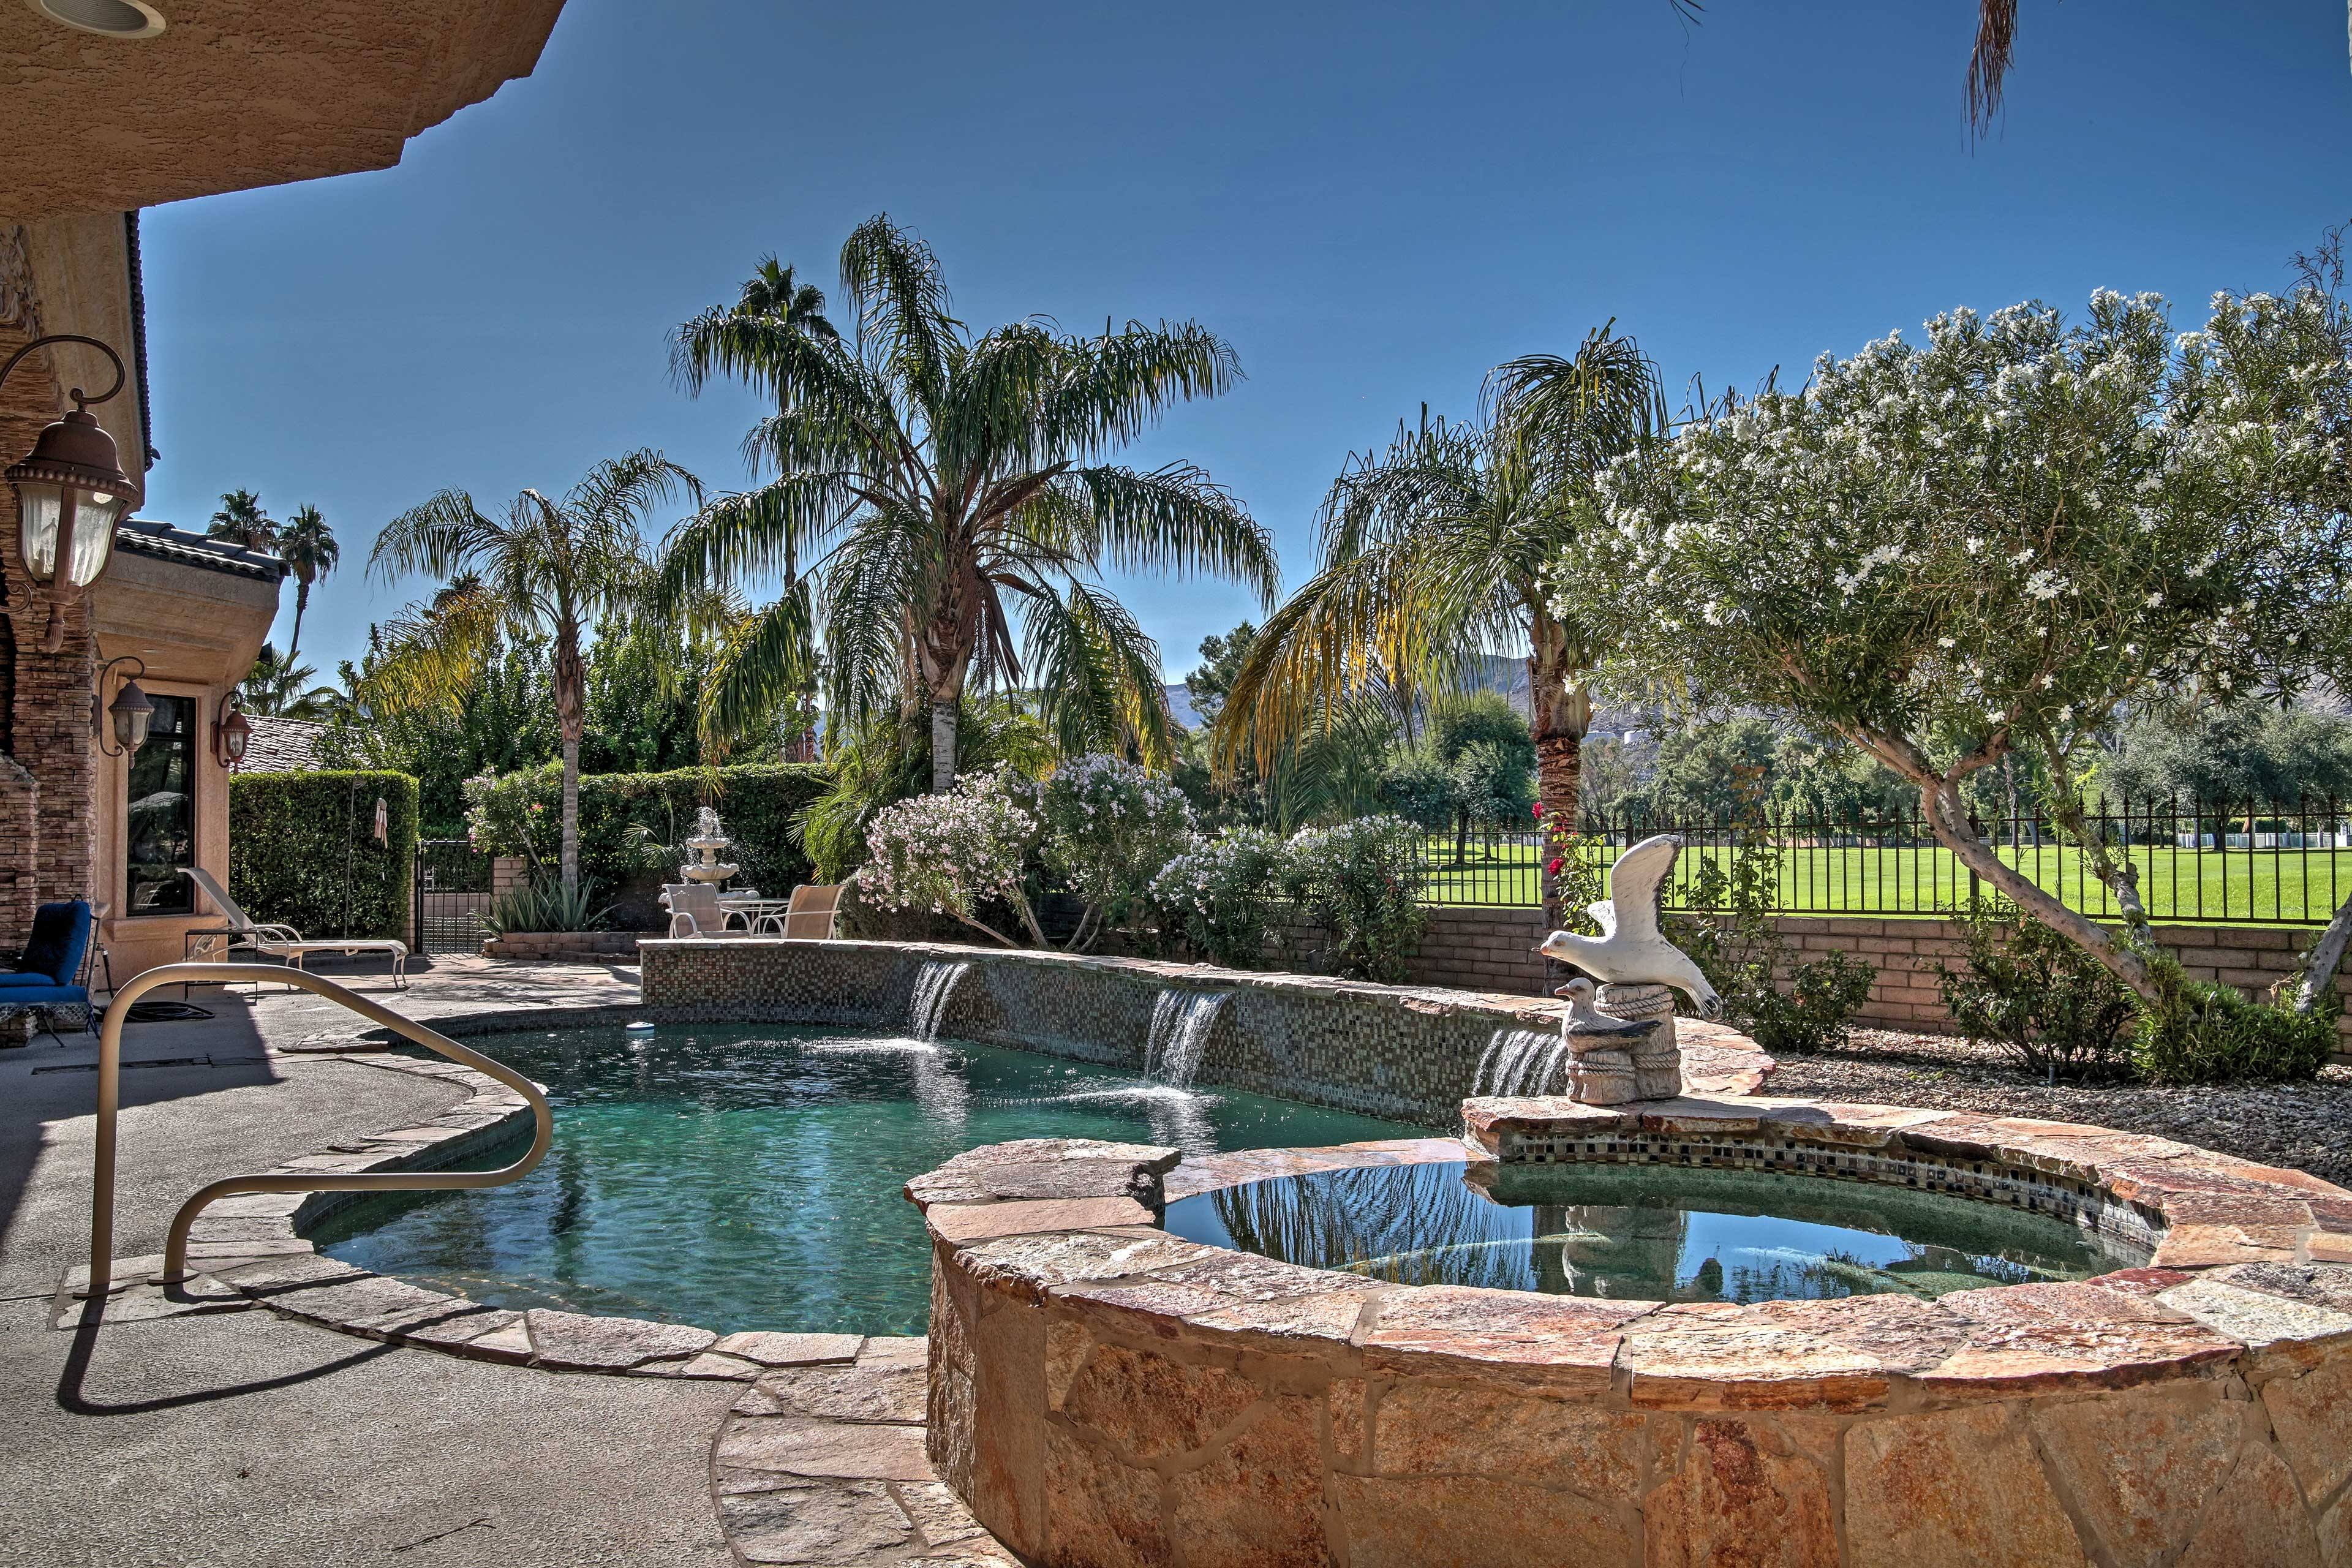 Palm Springs Vacation Rental | 4BR | 3BA | 2,500 Sq Ft | 1 Story